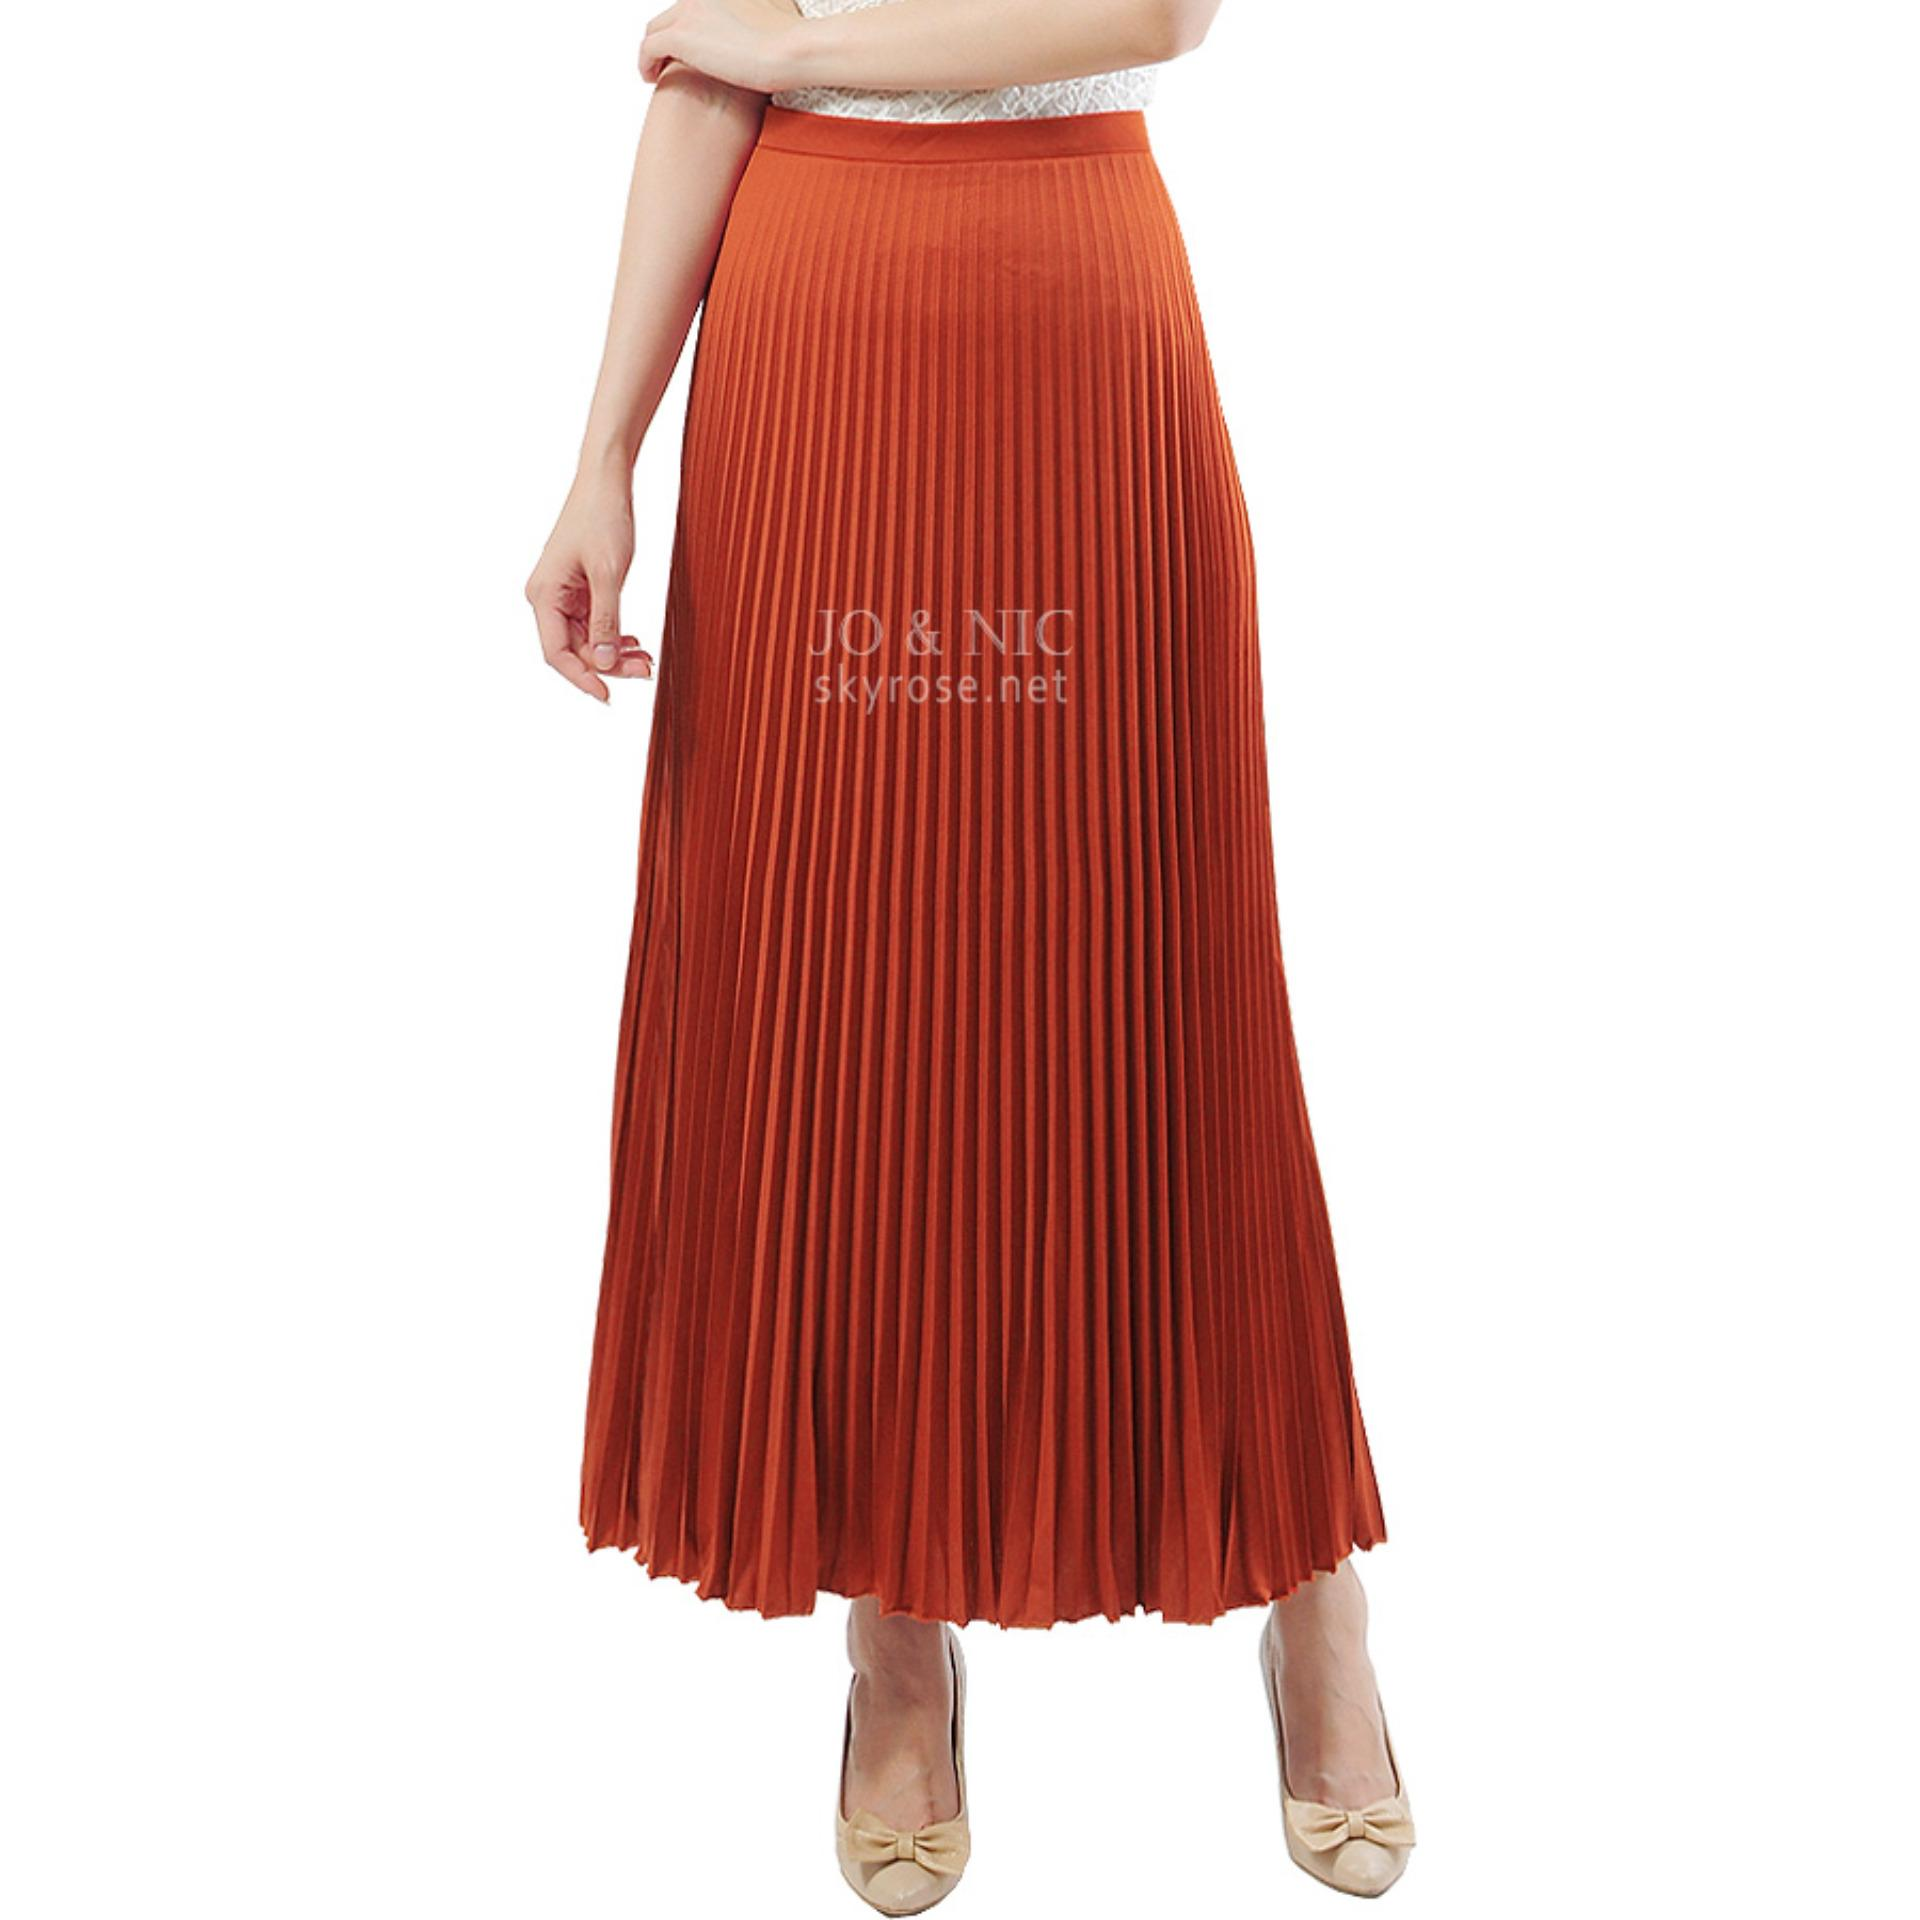 Jo Nic A Line Maxi Skirt Rok Hijab Fit To Xl Navy Daftar Harga Wrapped Long Btnl70254 Pleated Skirts Panjang Lipit Orange